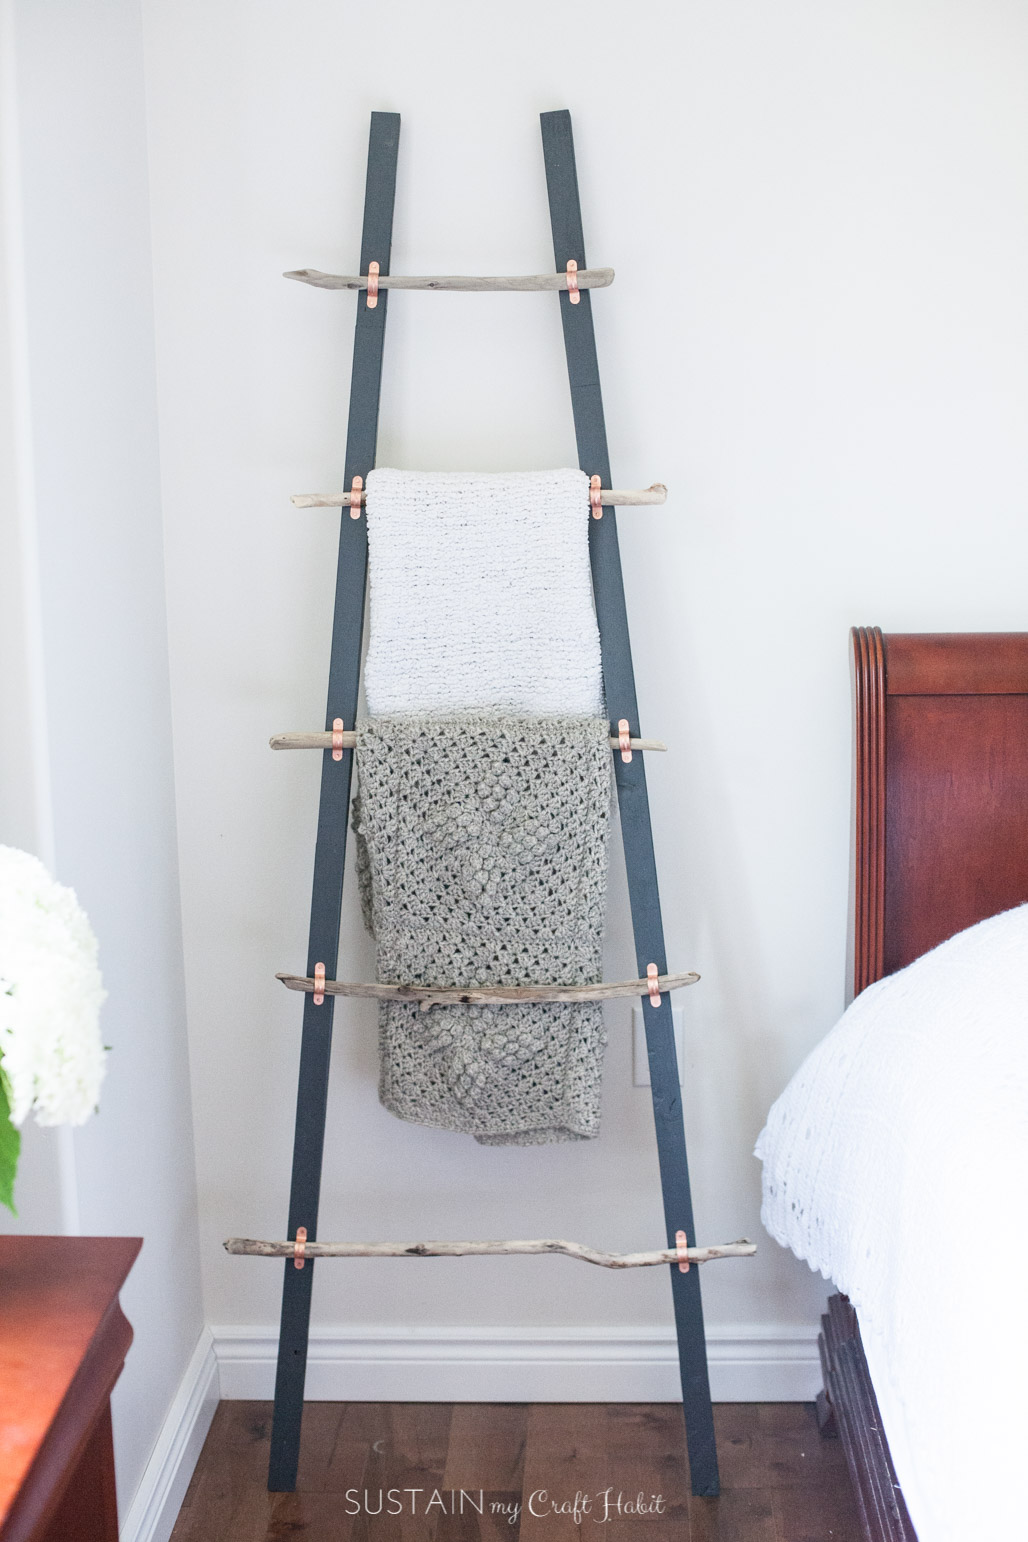 20' Ladder Home Depot How To Make A Diy Rustic Coastal Blanket Ladder With